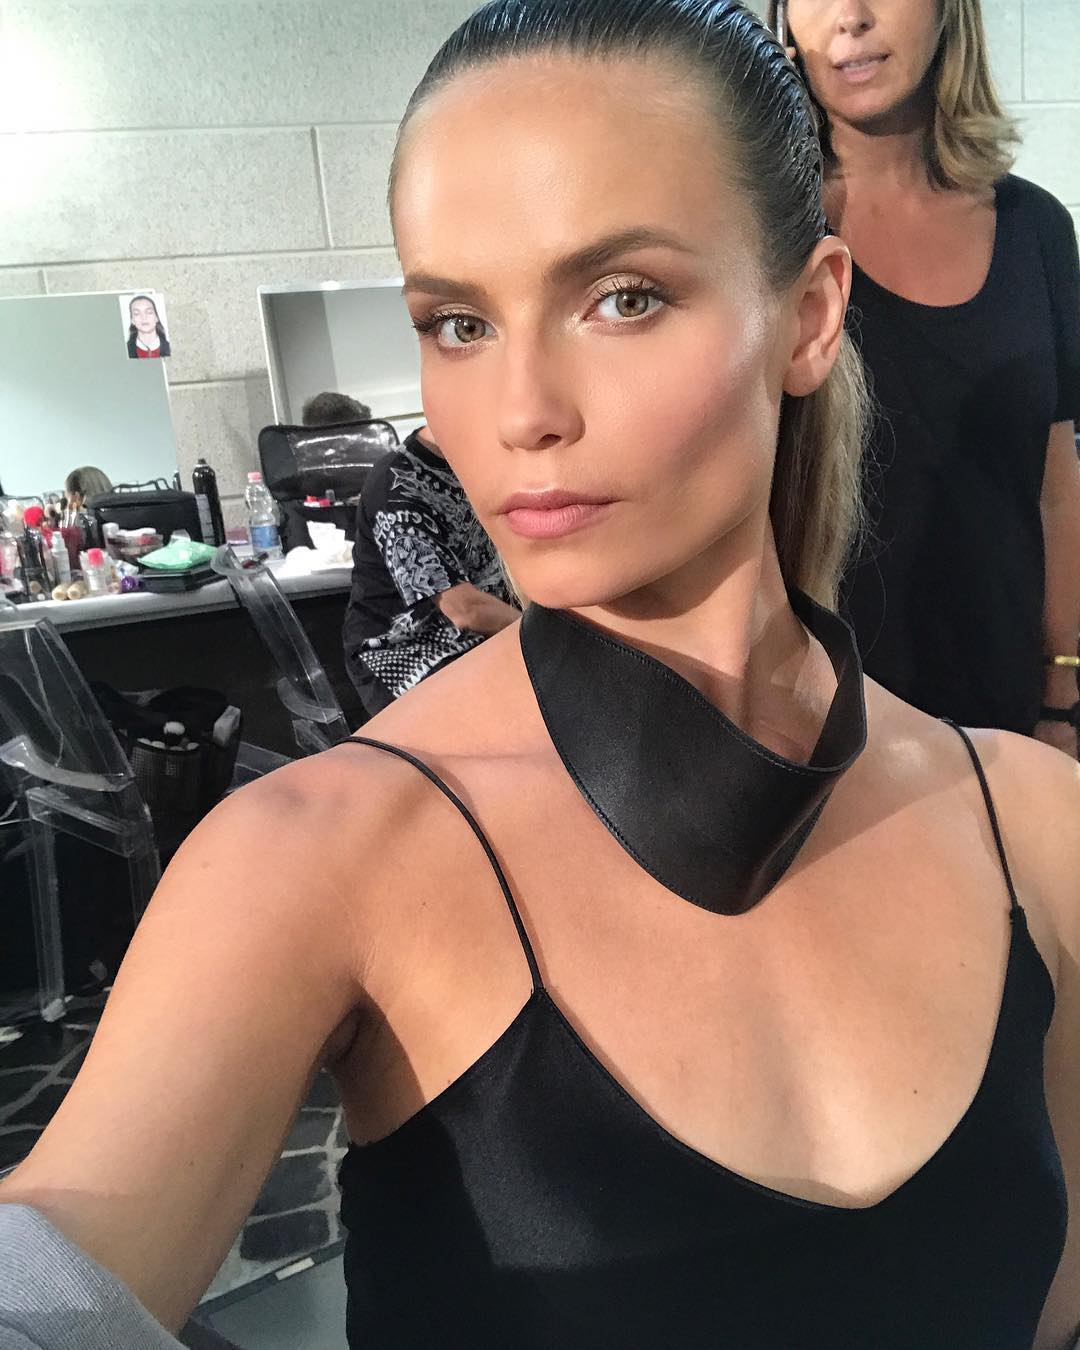 Наташа Поли: Hair And Make Up Done @patmcgrathreal @guidopalau    #VersaceSS18 Men @versace_official @donatella_versace